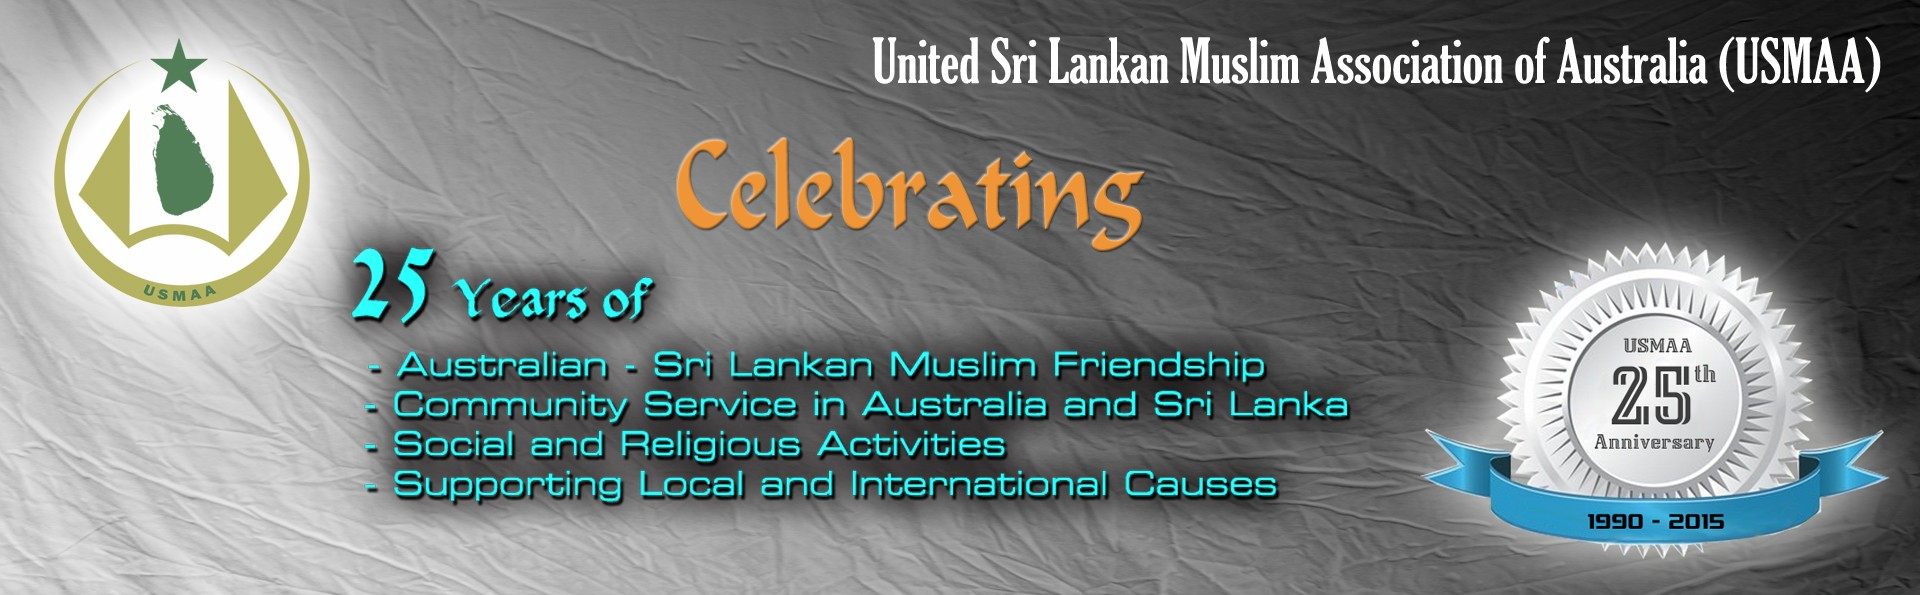 USMAA 25th Year Silver Jubilee Celebrations